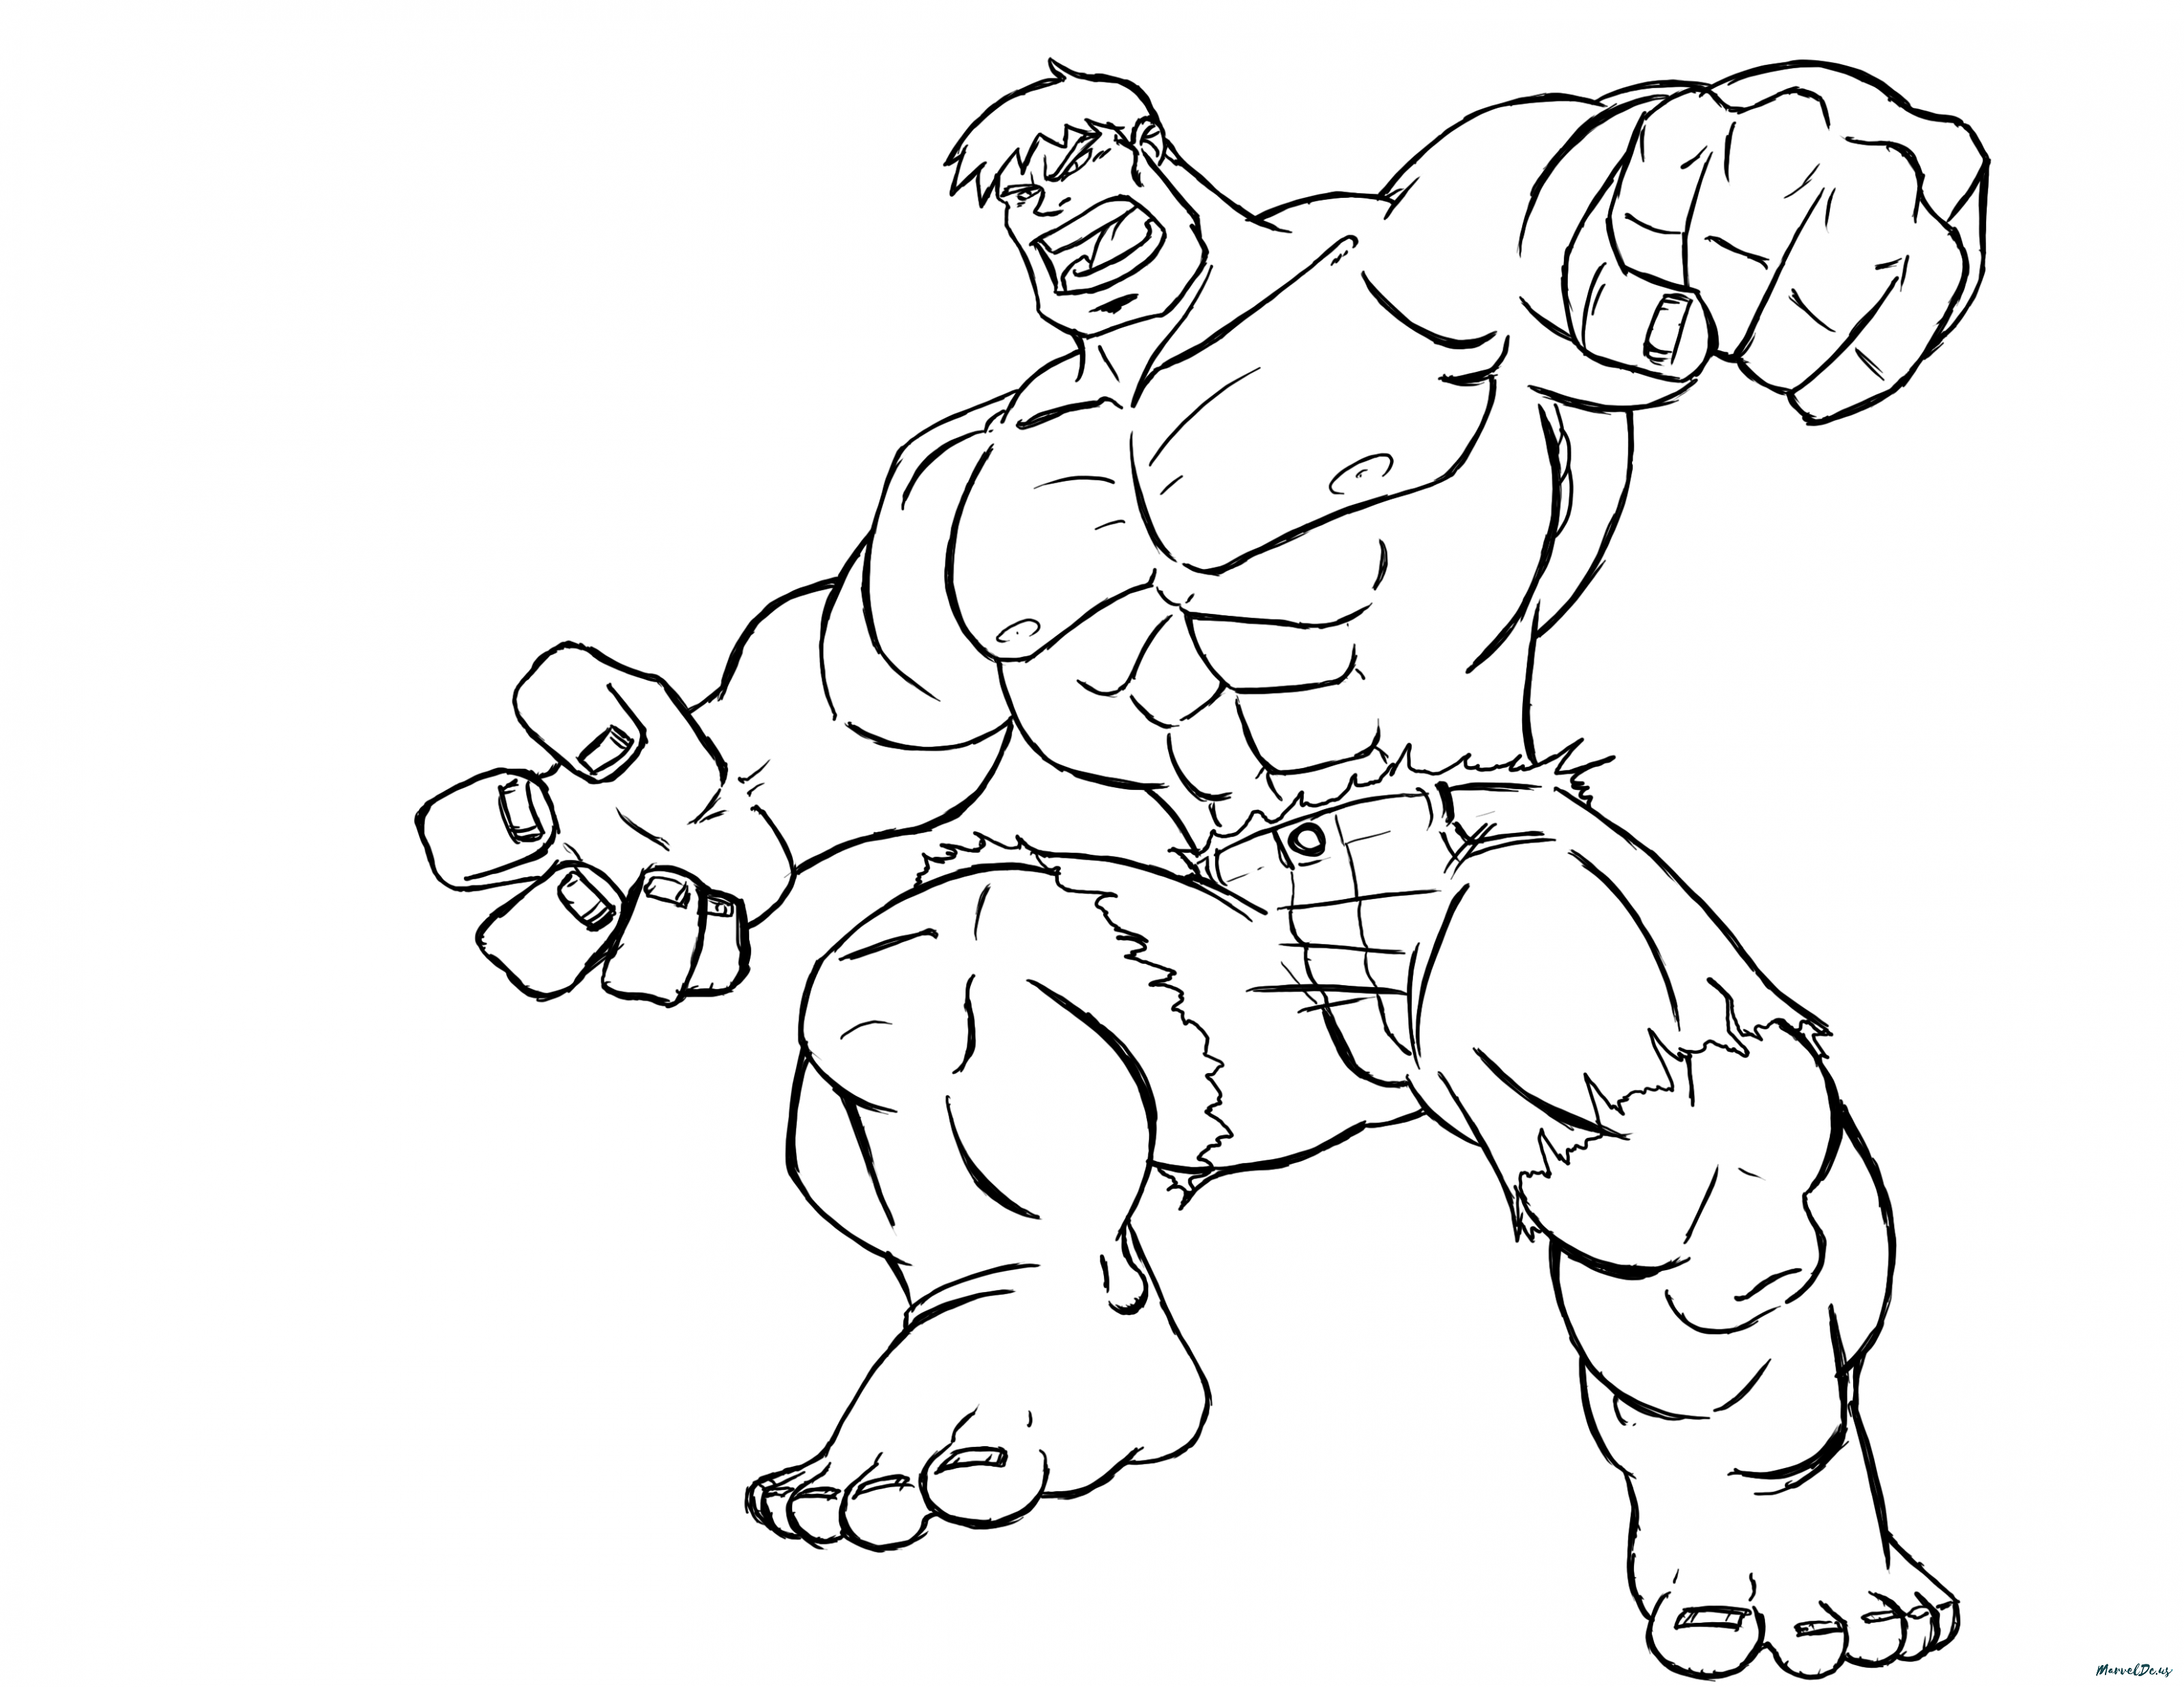 Good 3201x2473 Things That Make You Love And Hate Hulk Smash Cartoon Easy